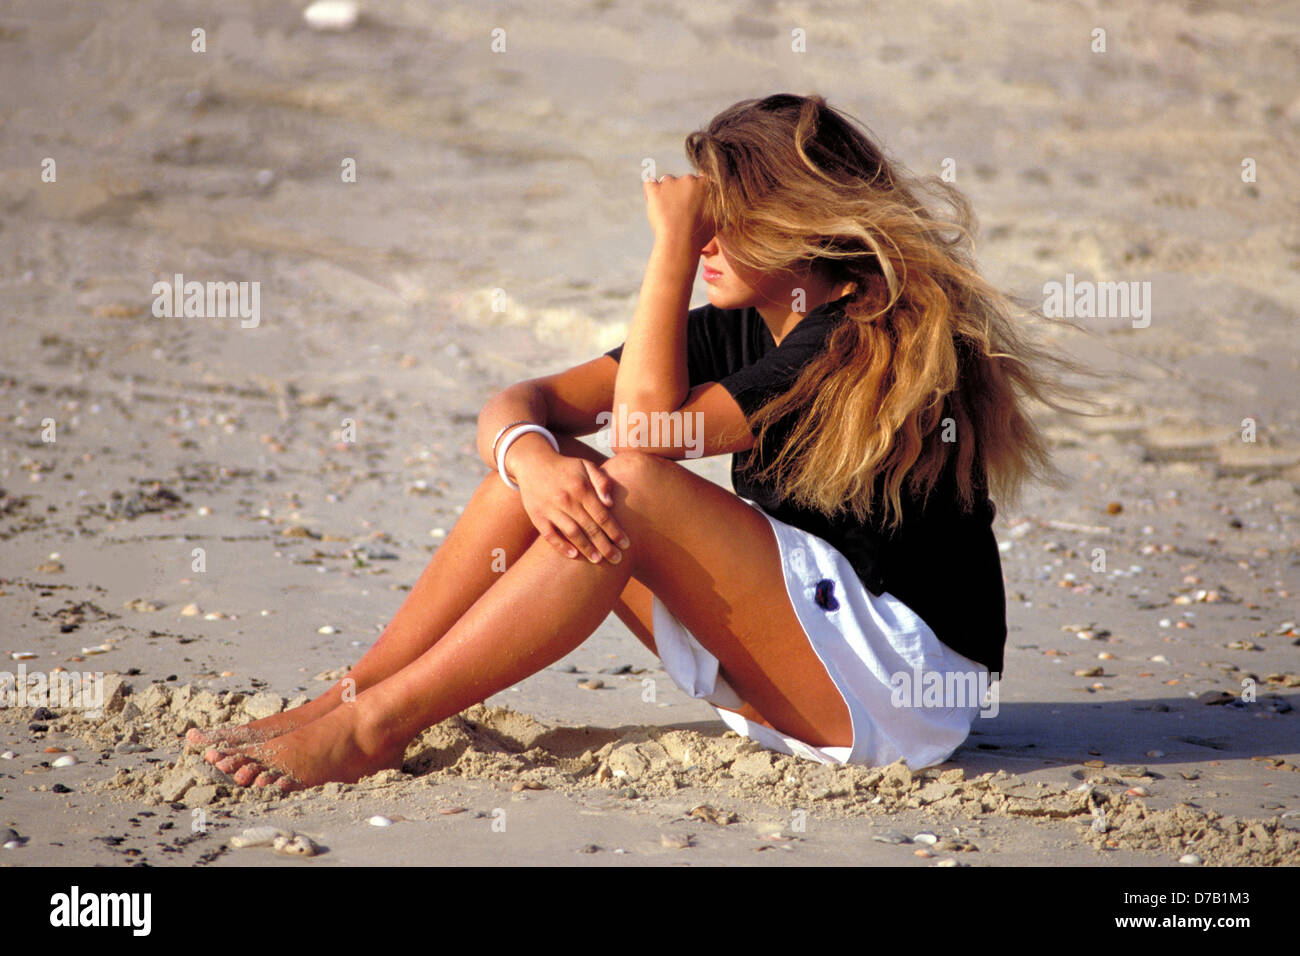 Girl on a beach - Stock Image